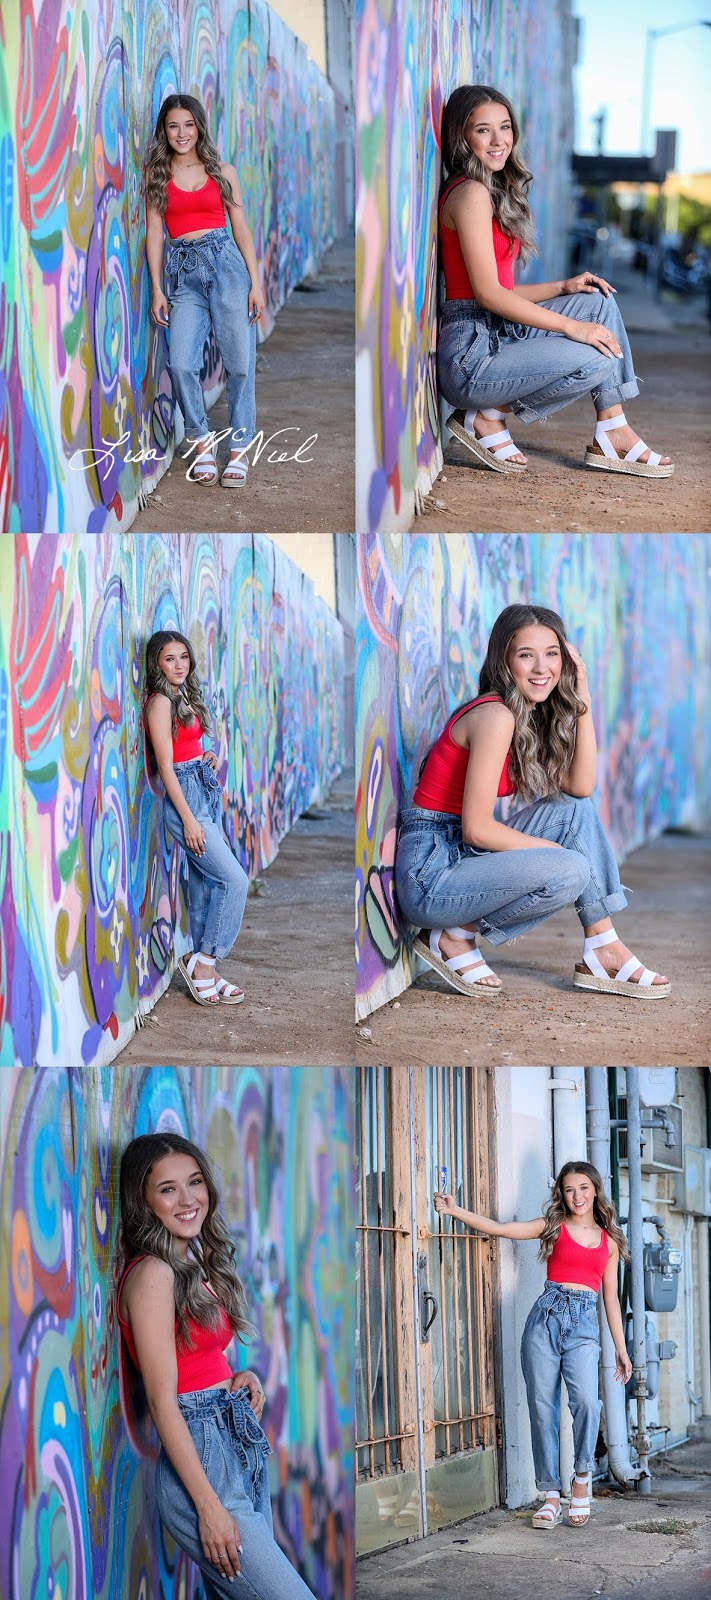 teen girl in urban graffiti setting